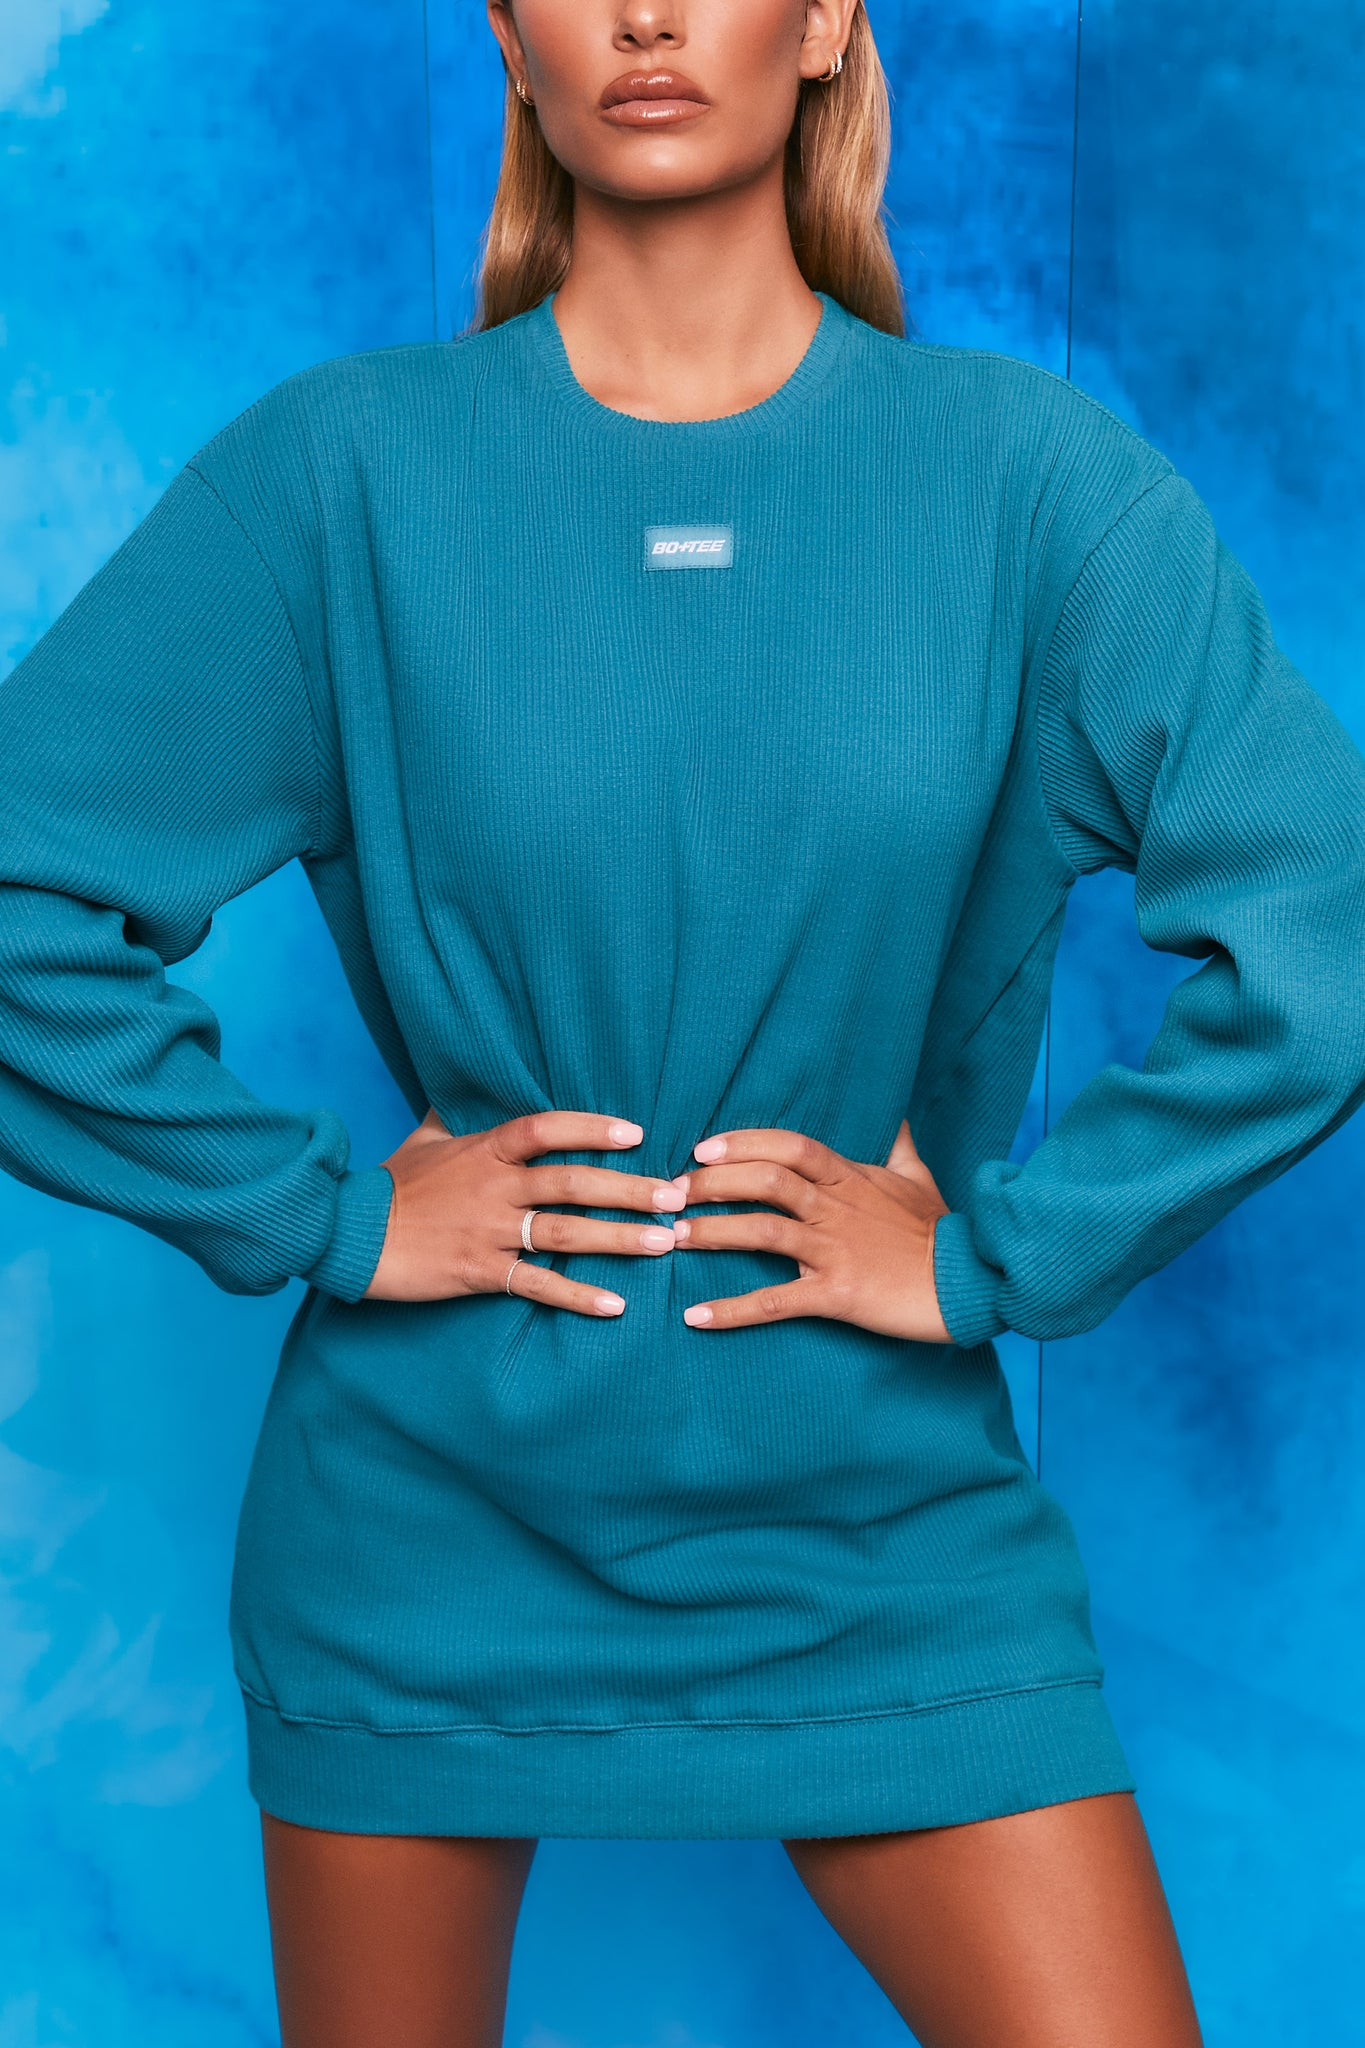 Plain teal ribbed oversized sweatshirt with long sleeves. Image 5 of 6.